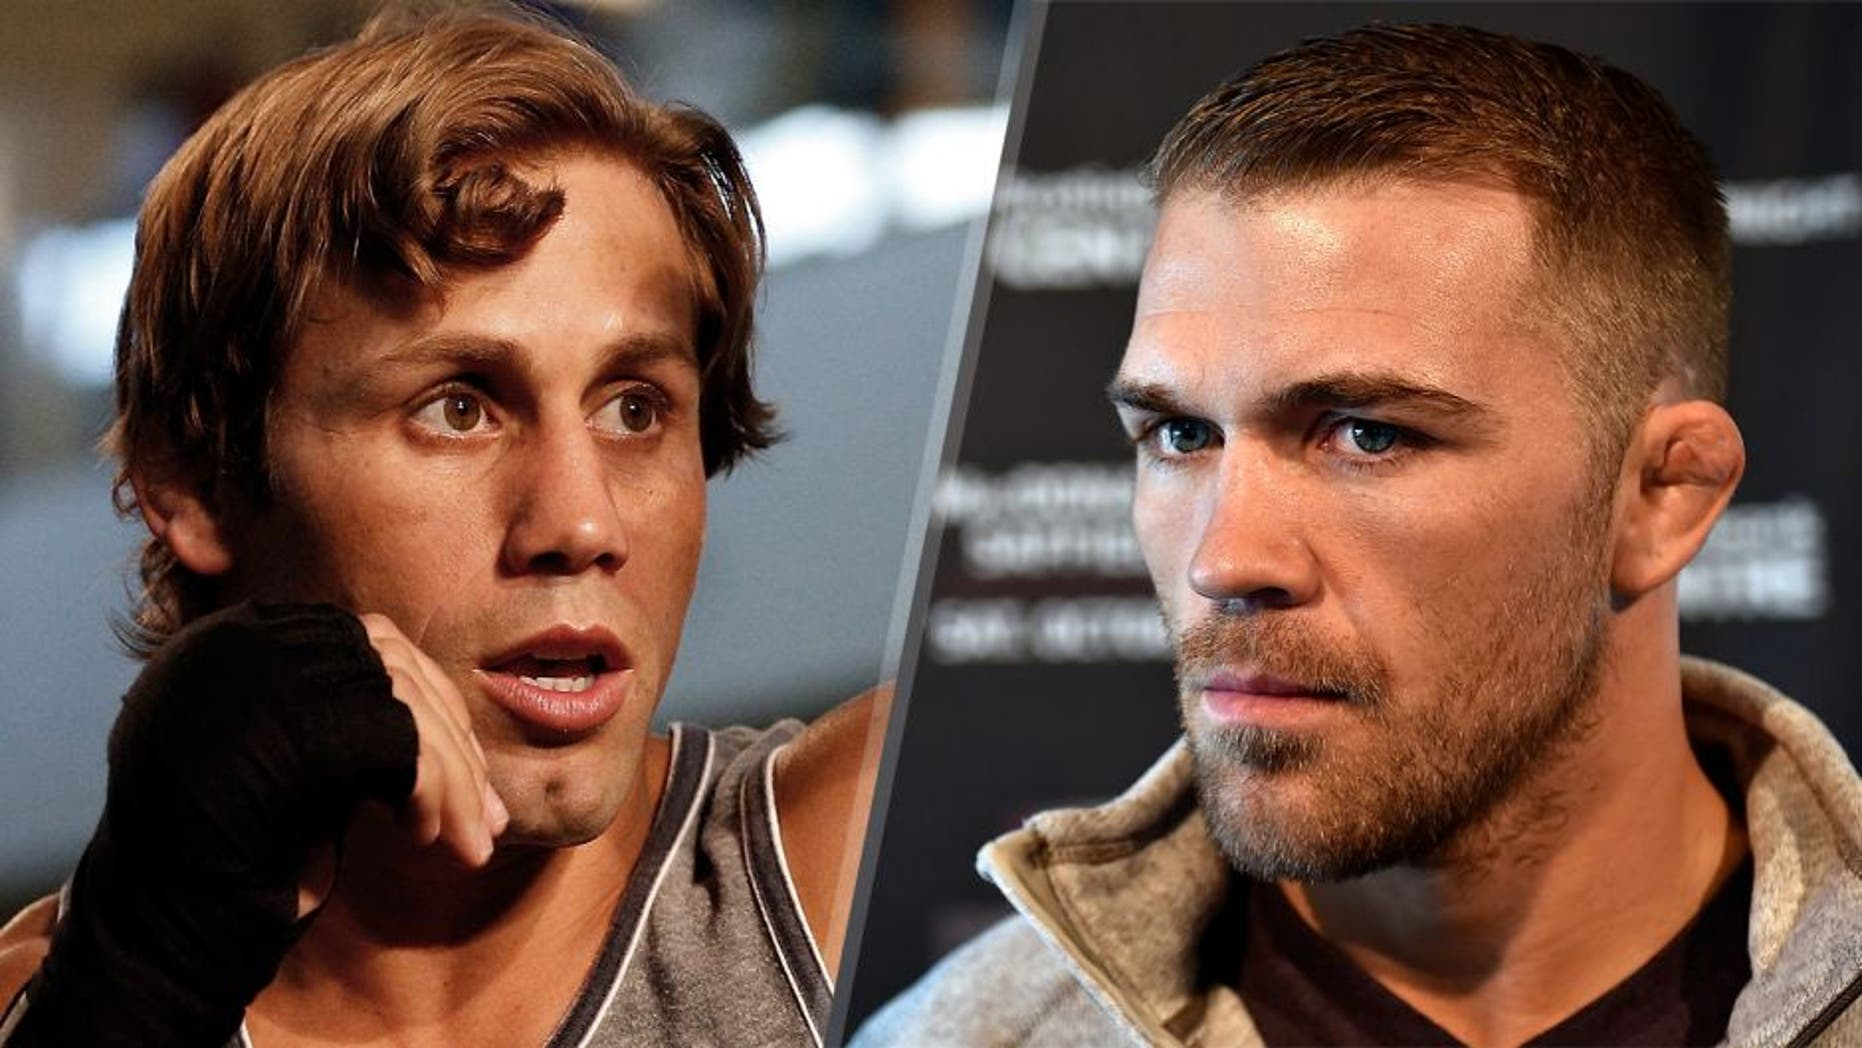 Urijah Faber holds an open training session ahead of UFC 175 at the Fashion Show Mall on July 2, 2014 in Las Vegas, Nevada. (Photo by Josh Hedges/Zuffa LLC/Zuffa LLC via Getty Images) Bryan Caraway speaks to the media during the UFC Fight Night Ultimate Media Day on October 2, 2014 in Halifax, Nova Scotia, Canada. (Photo by Jeff Bottari/Zuffa LLC/Zuffa LLC via Getty Images)